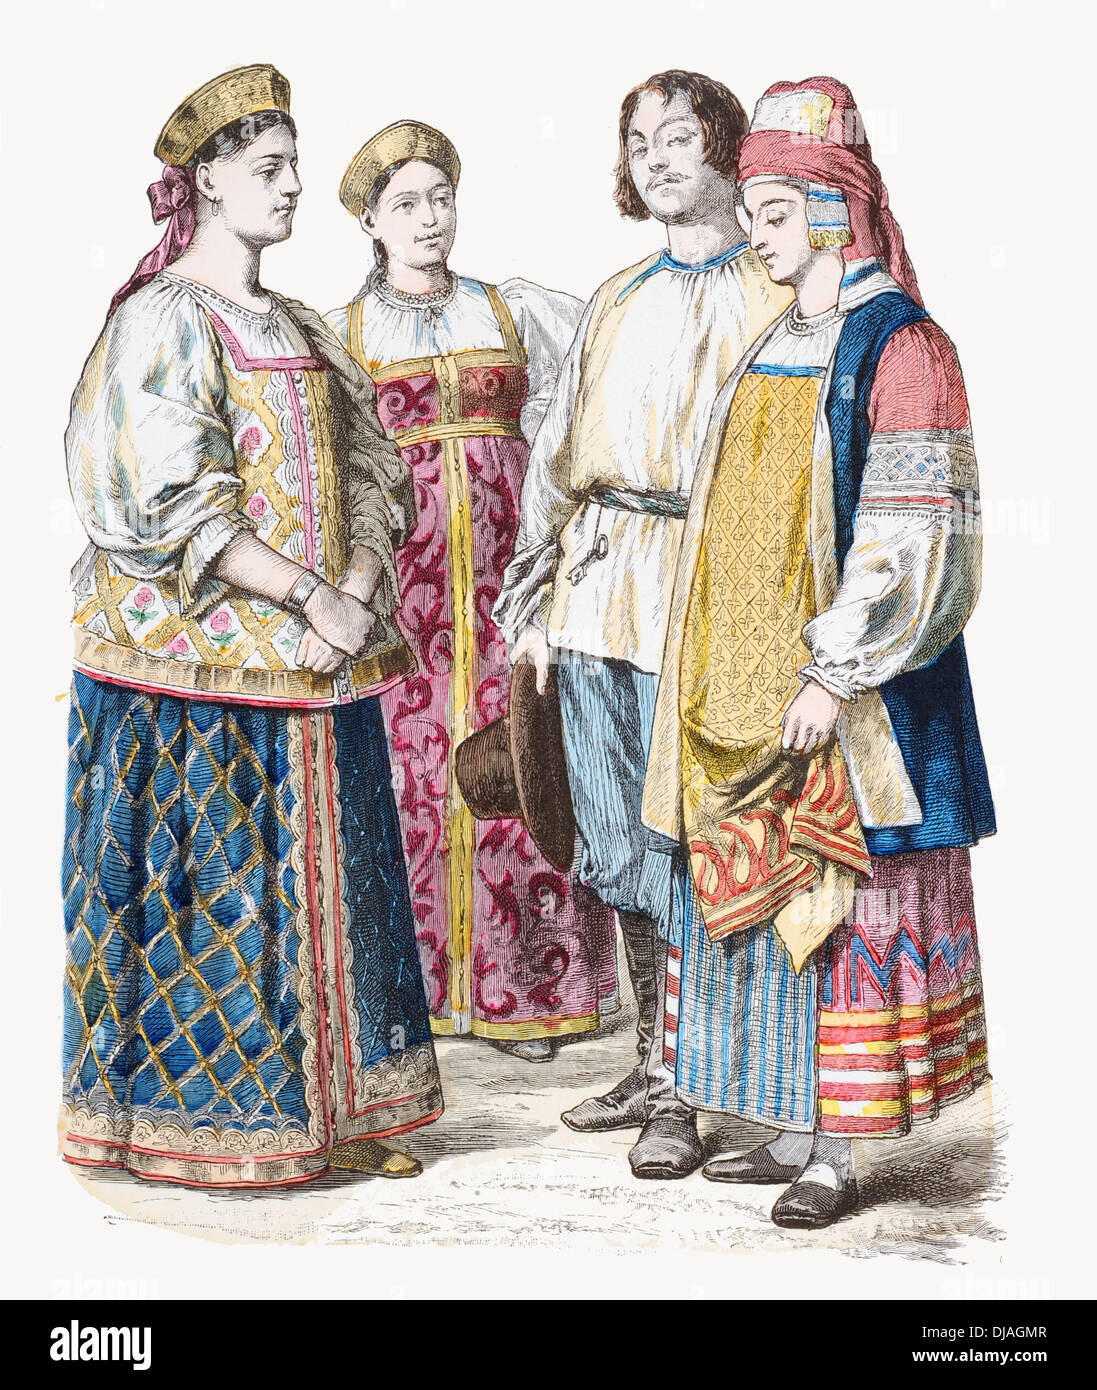 19th century XIX Russia Left to right Ladies of Jaroslaw, Tvier Poland and a couple from kaluga brocade embroidery cotton fabric - Stock Image